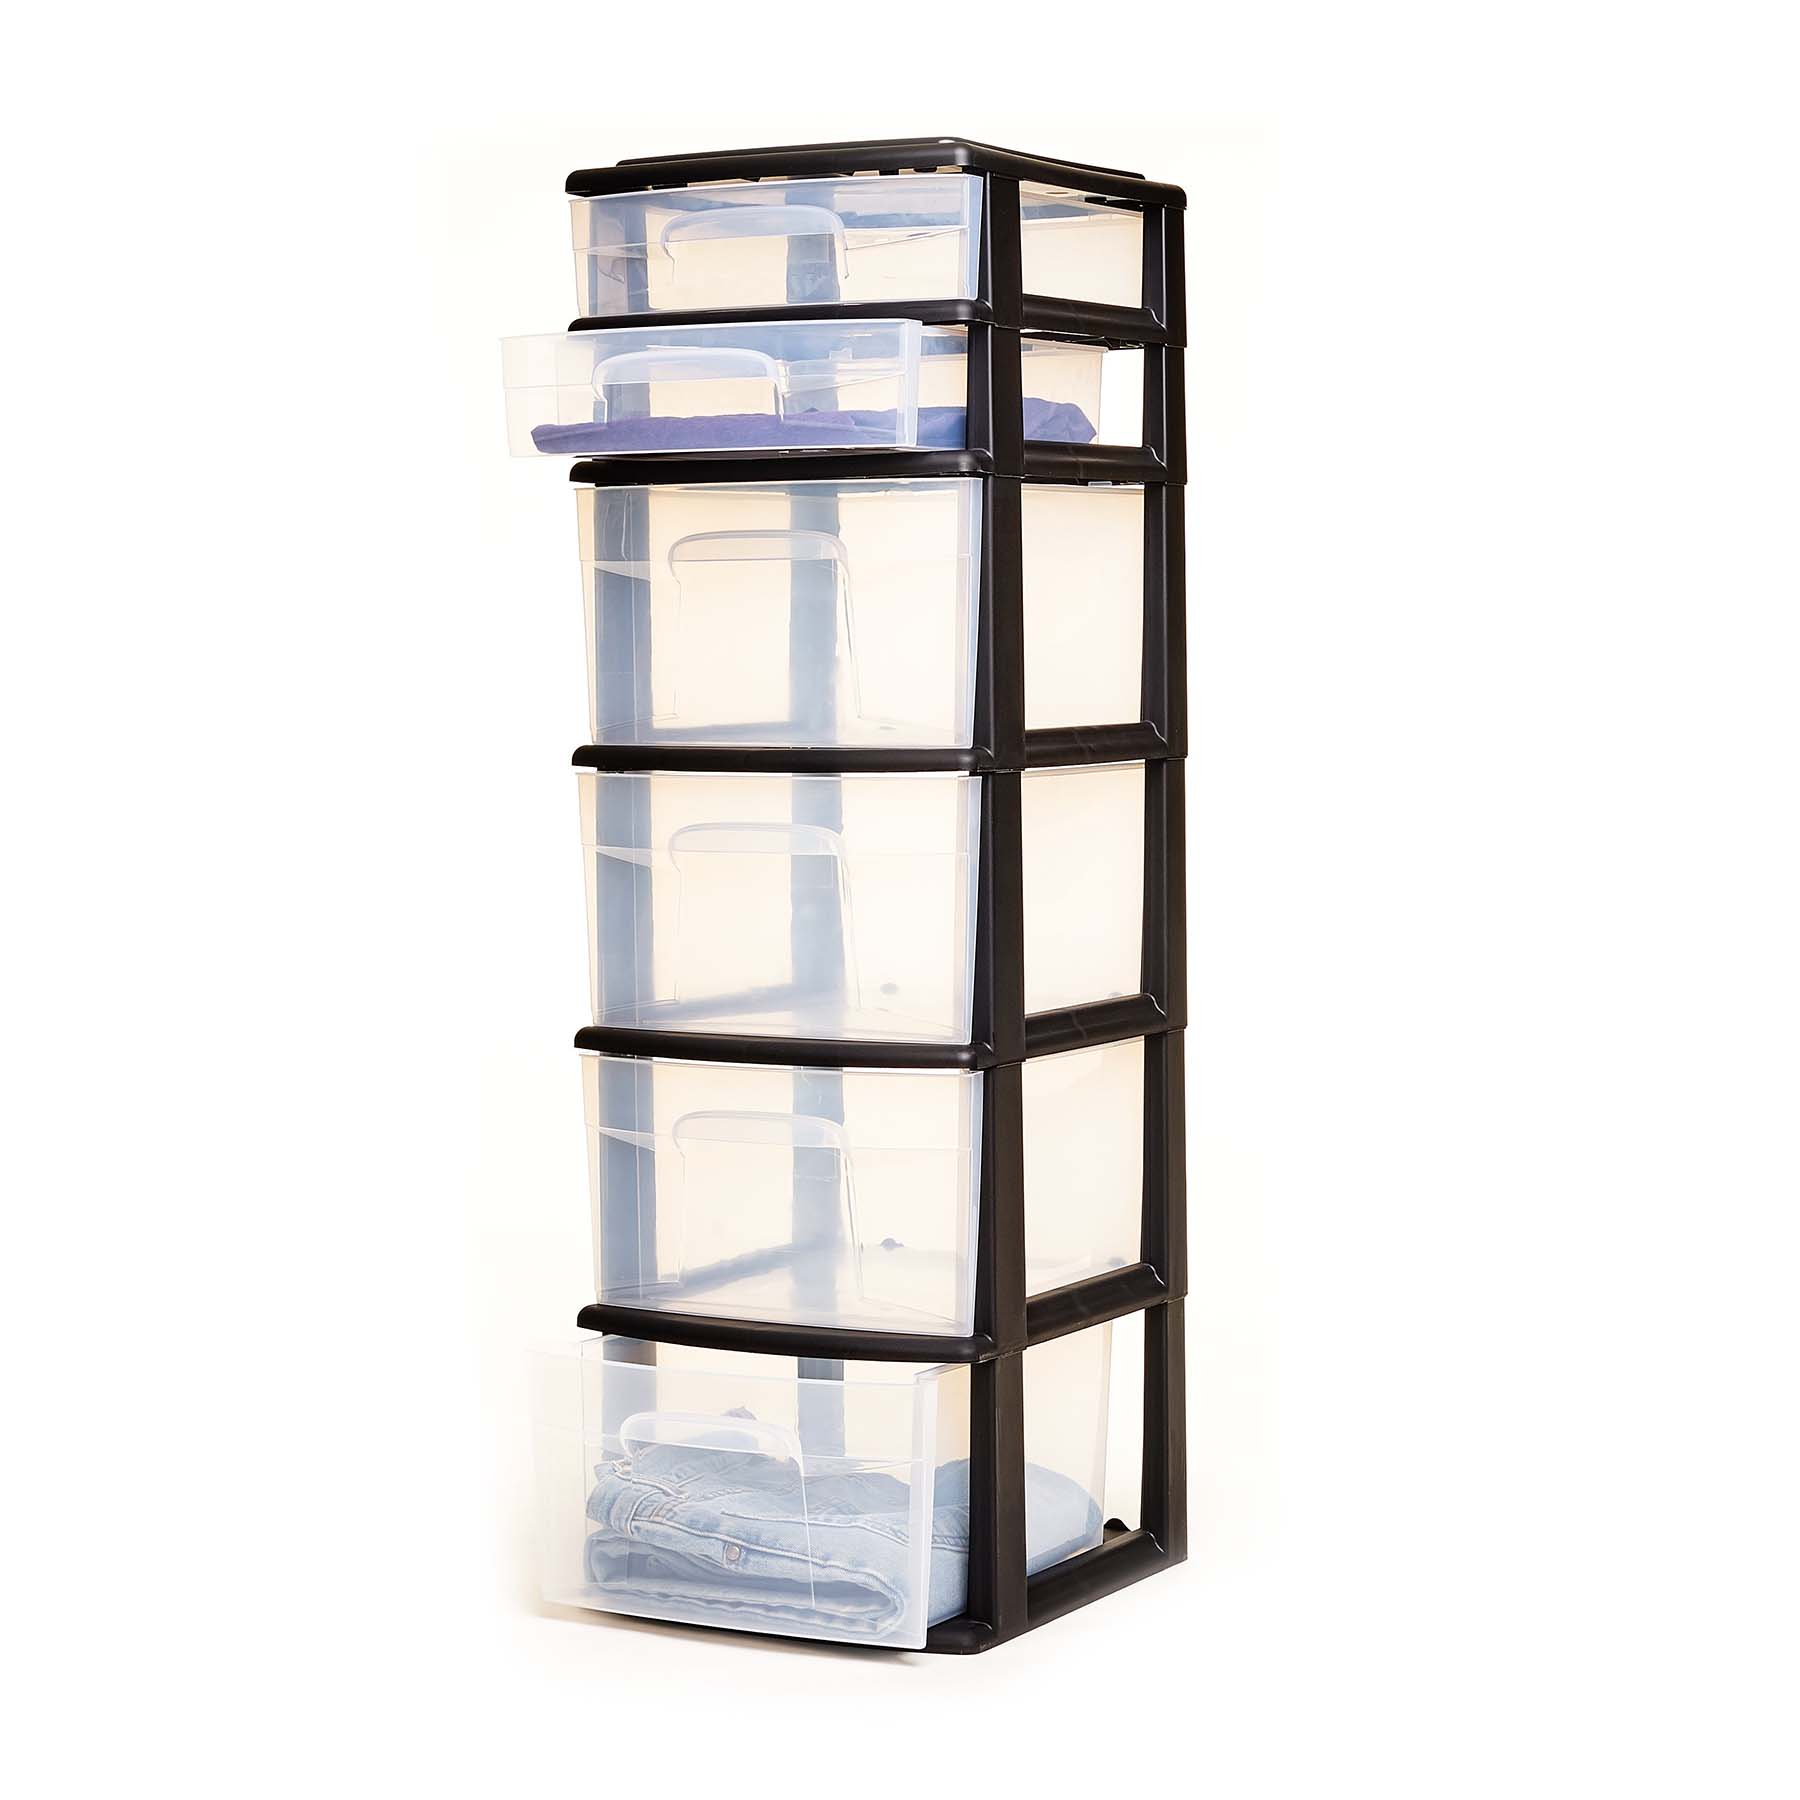 6 Drawers Plastic Storage Tower Organizer Container Drawer Box